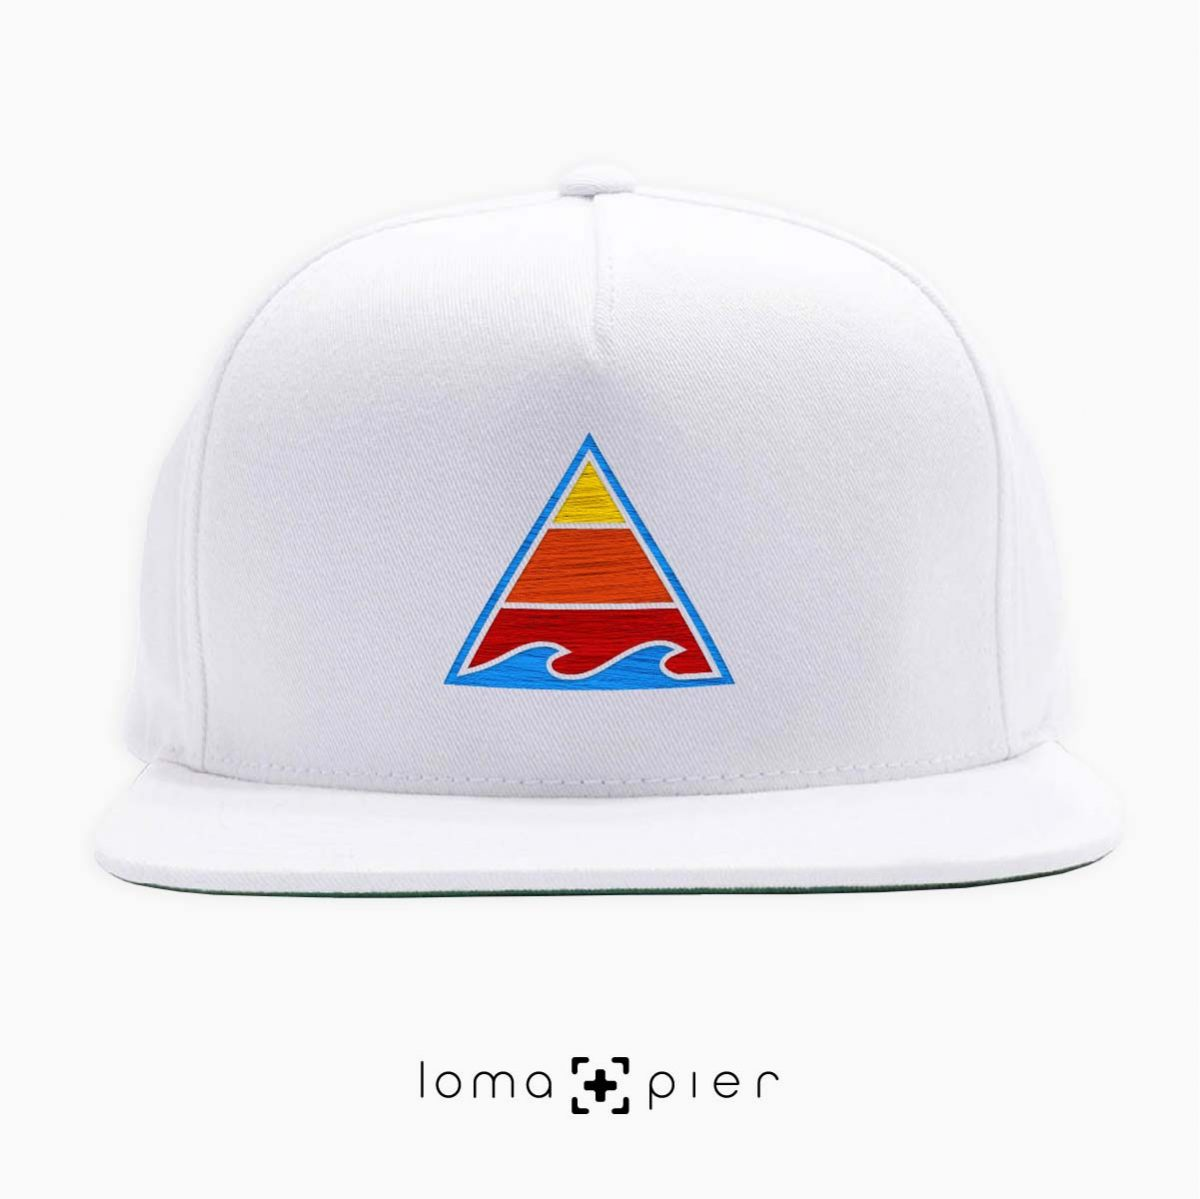 RIDE THAT WAVE hat in white by loma+pier hat store